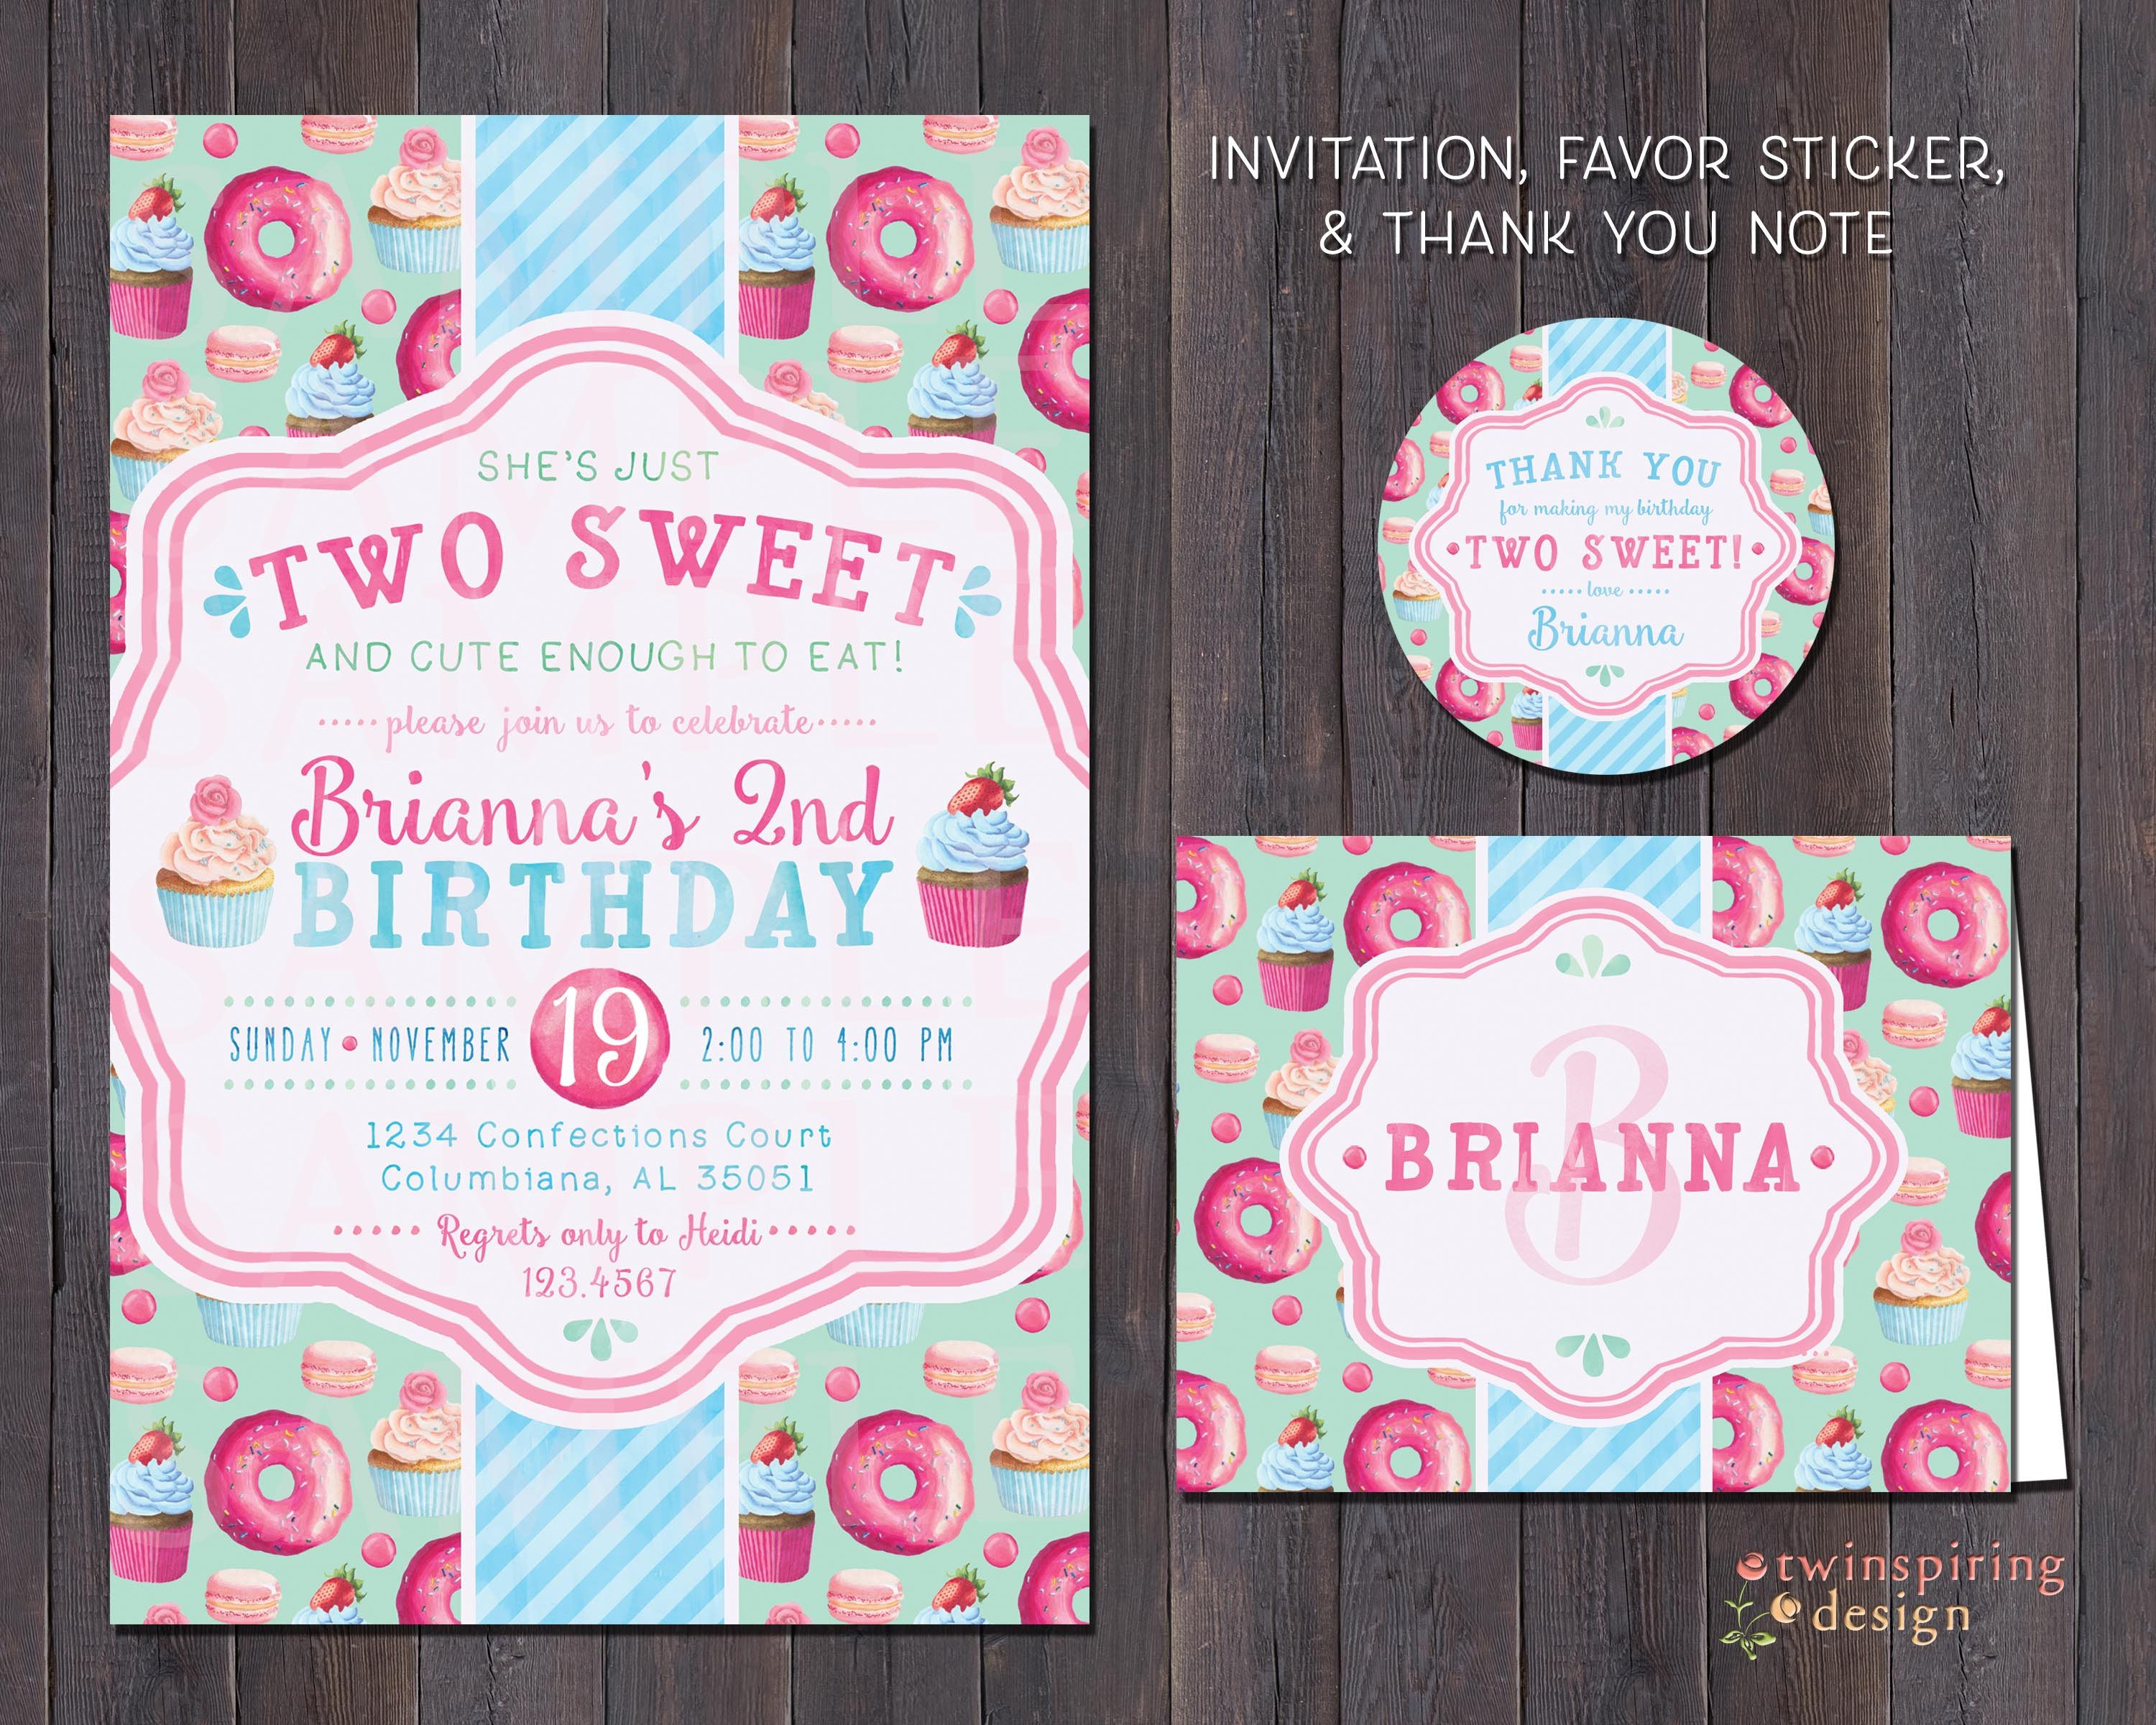 Two sweet cupcake donut birthday party invitations thank you notes two sweet cupcake donut birthday party invitations thank you notes andor favor stickers sweet treats birthday party package stopboris Images